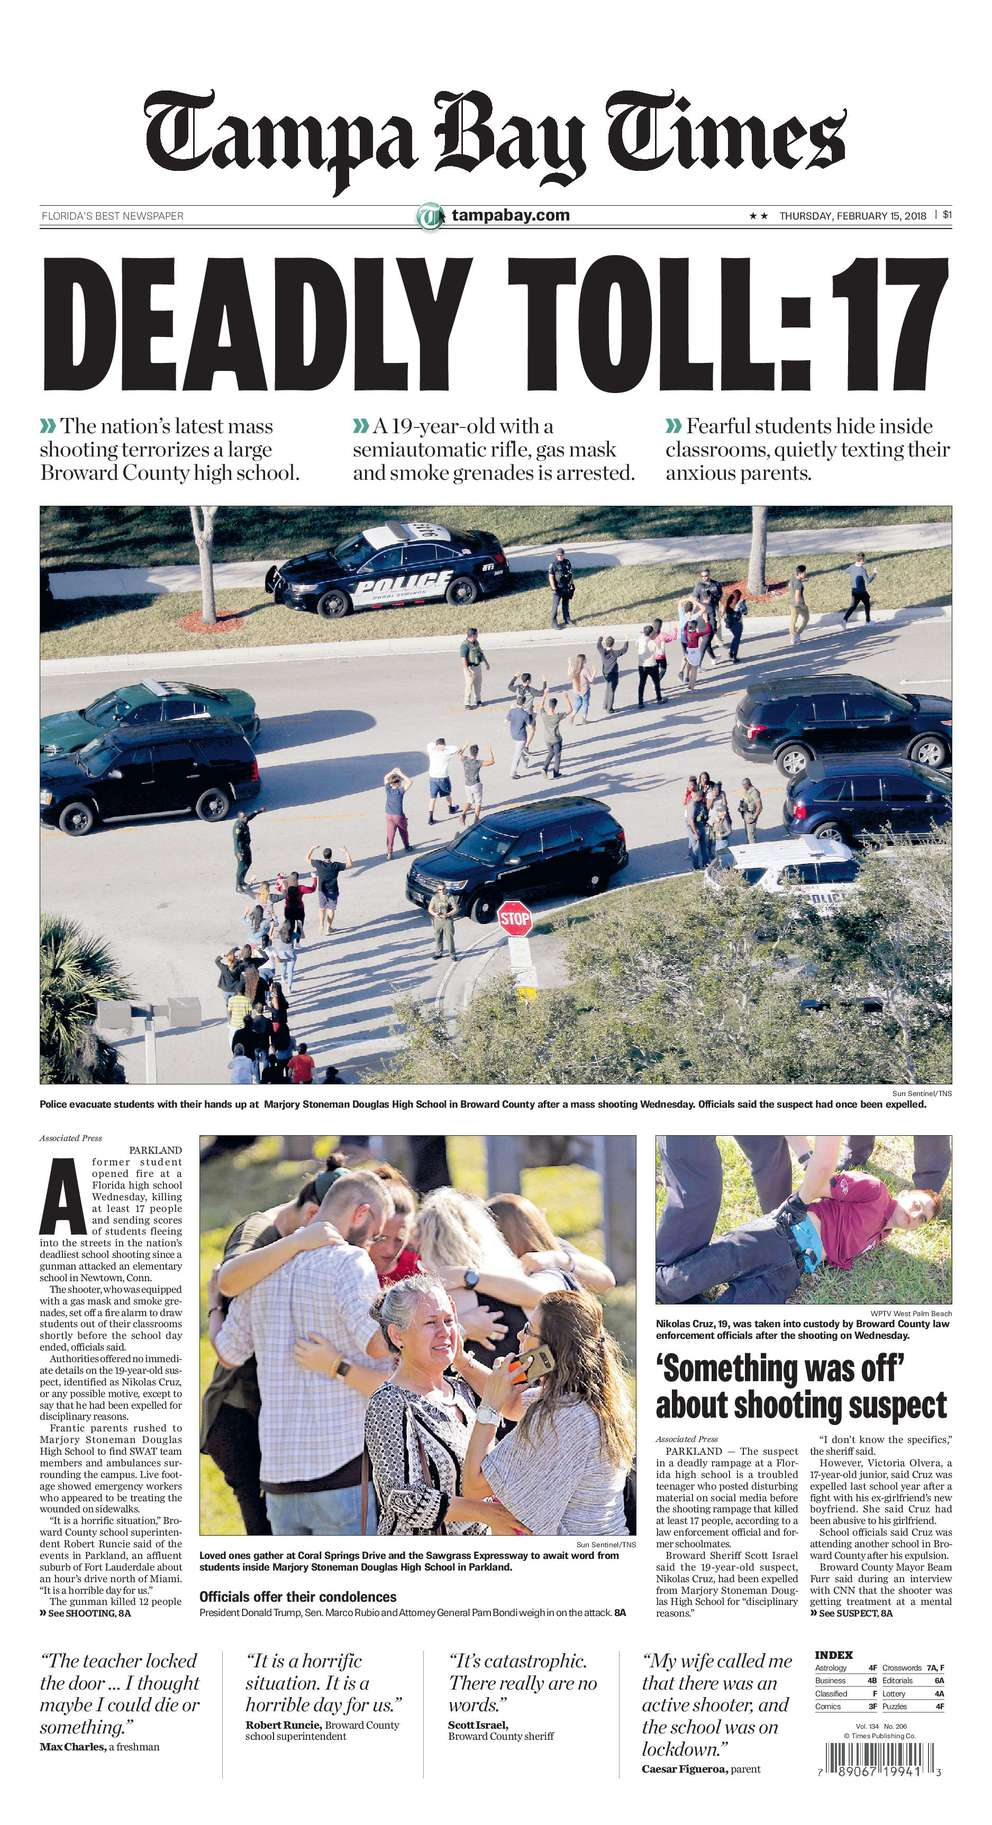 Feb. 14, 2018: 17 killed. An expelled student returned to Marjory Stoneman Douglas High School and killed 17 people at the school in Parkland, FL. He was captured and awaits trial.